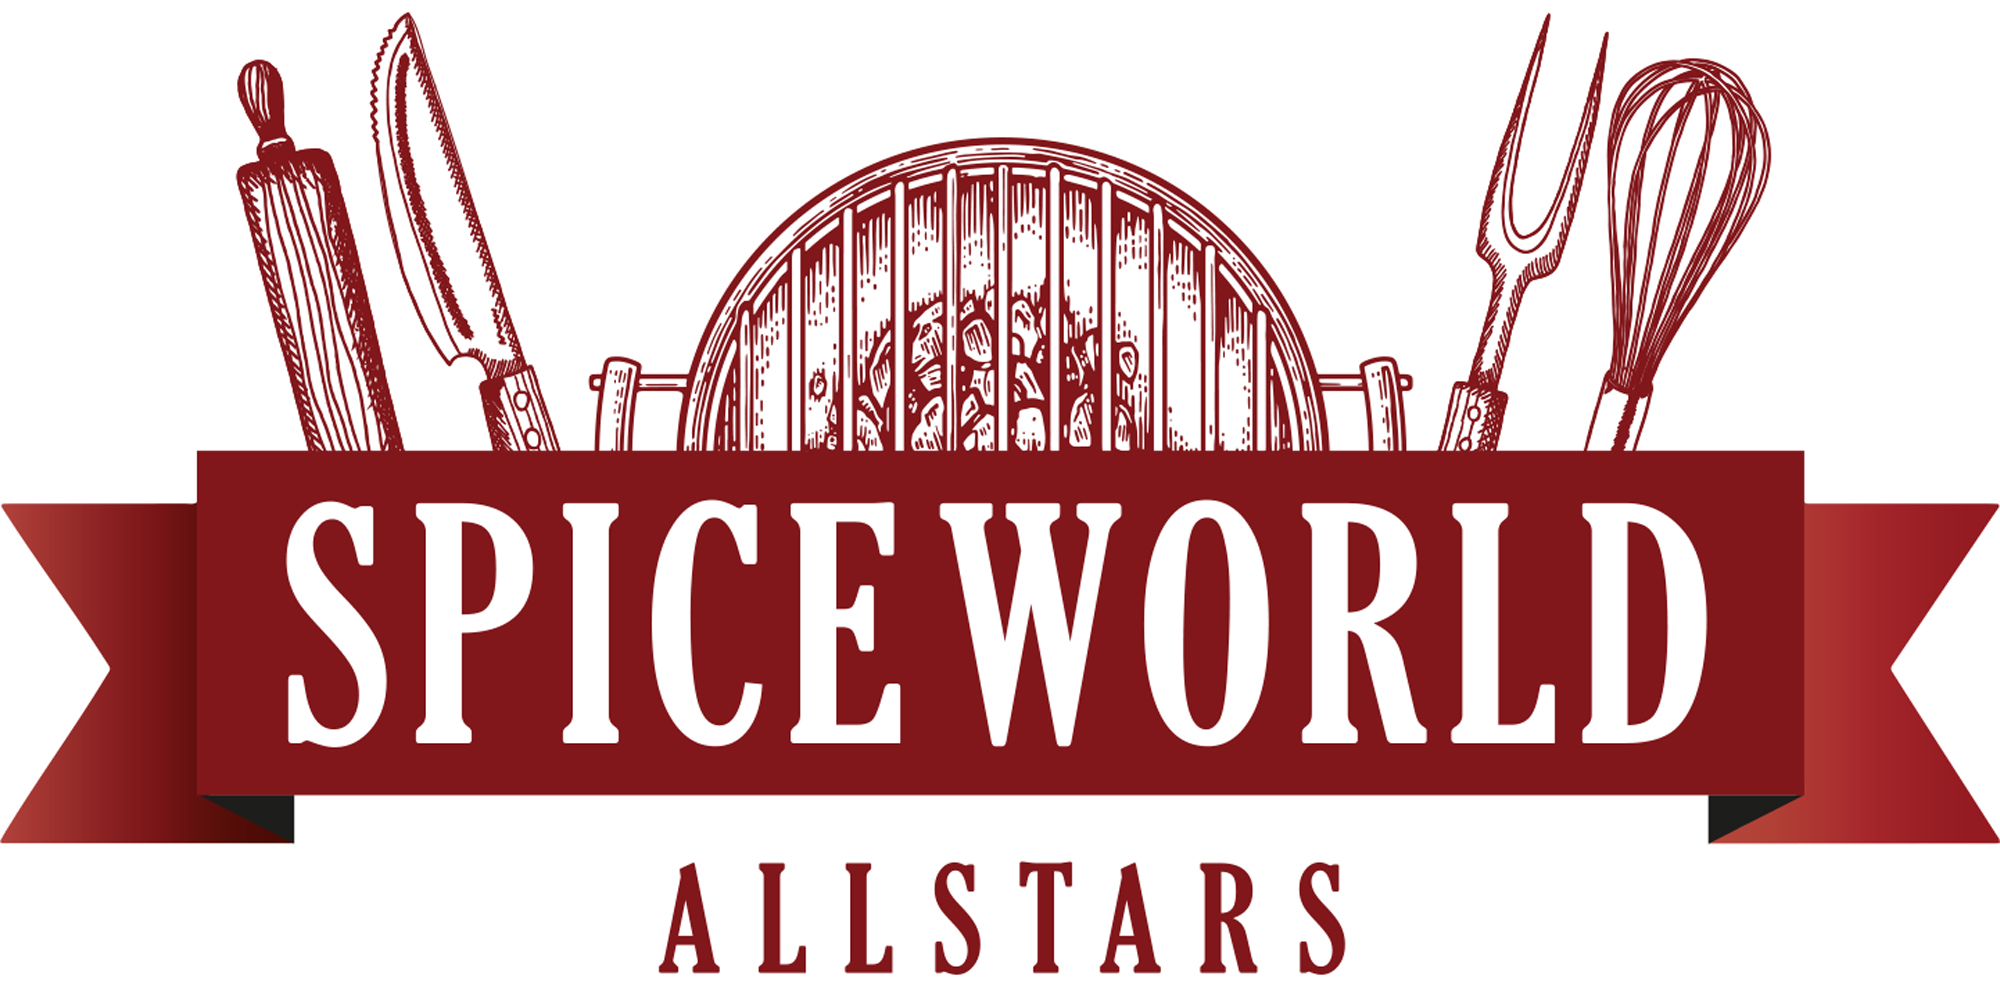 Spiceworld Allstars